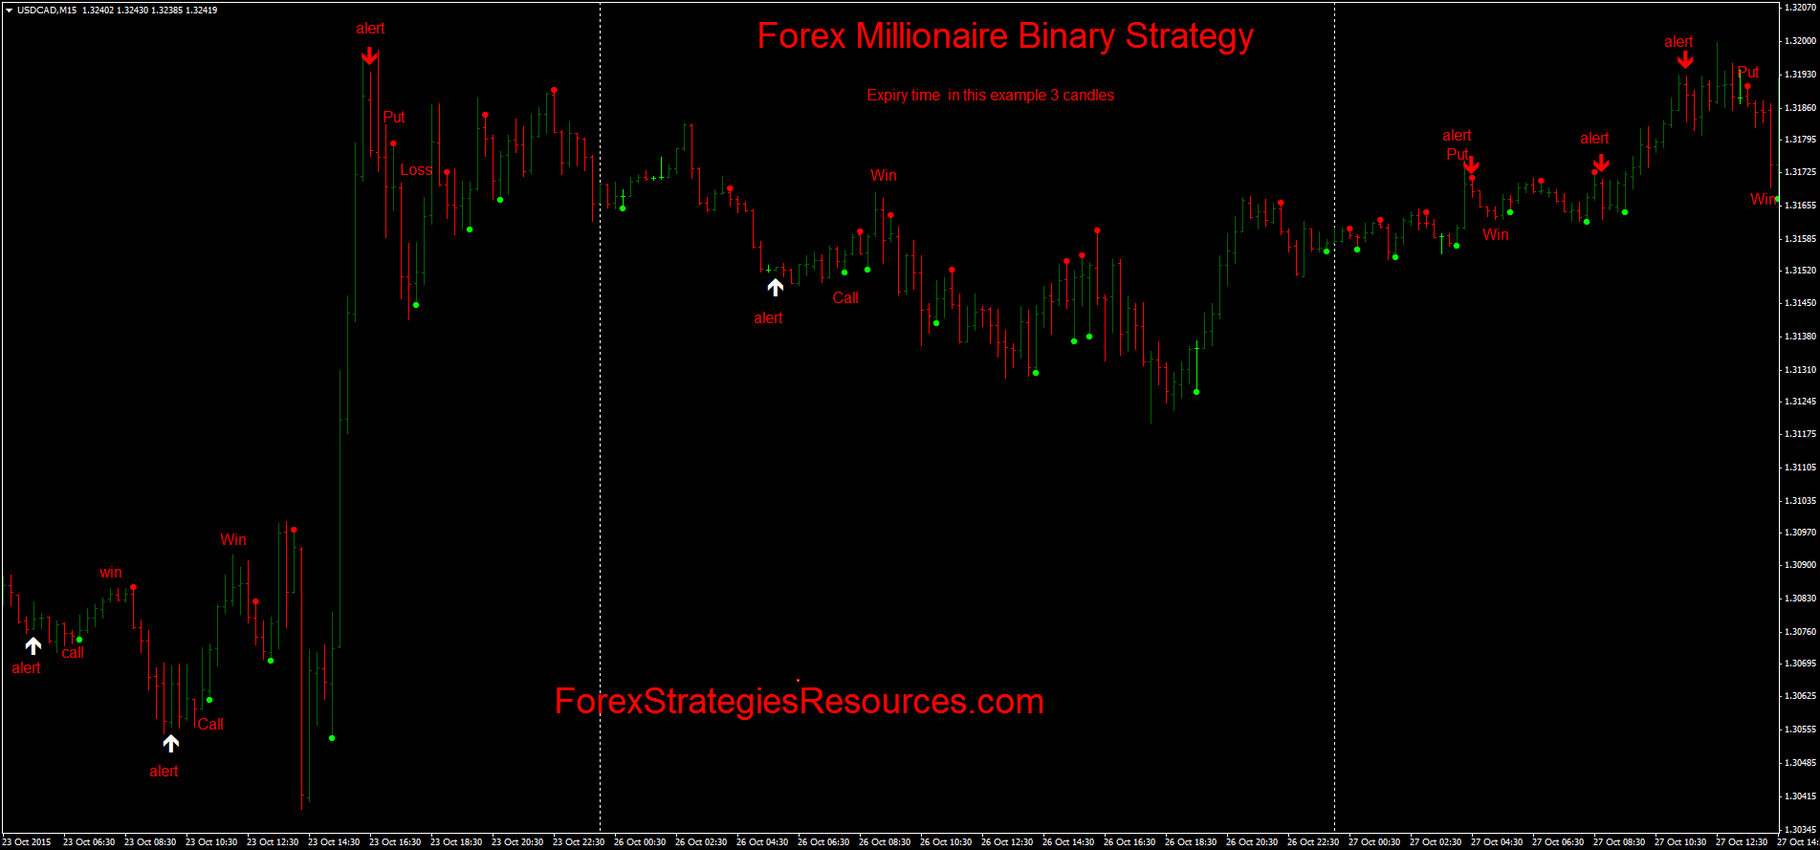 Investire con le opzioni binarie con successo con Best Strategies e Binary Option Indicator